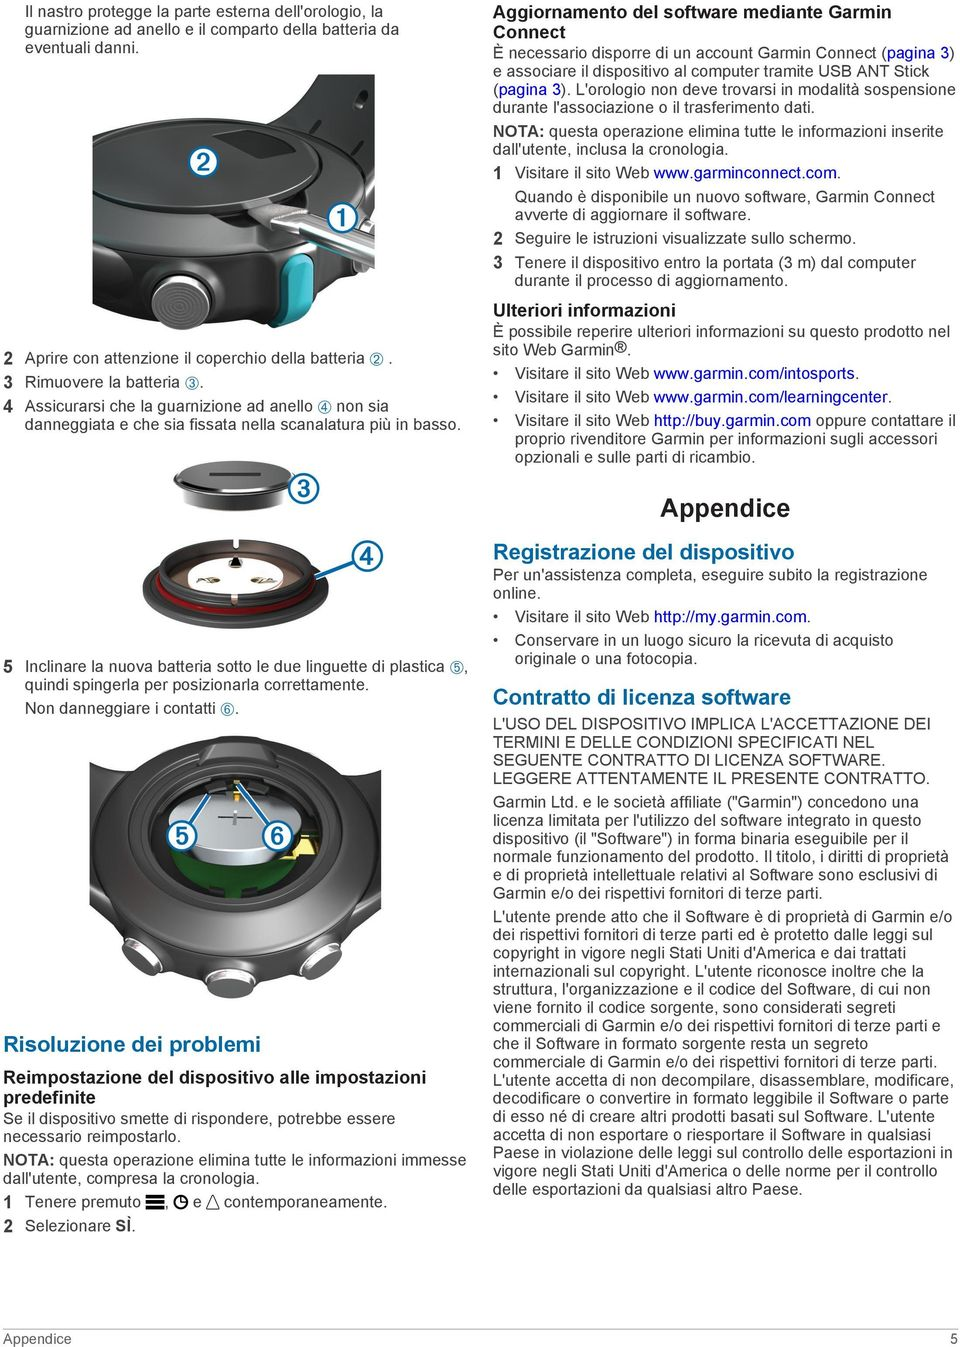 Aggiornamento del software mediante Garmin Connect È necessario disporre di un account Garmin Connect (pagina 3) e associare il dispositivo al computer tramite USB ANT Stick (pagina 3).